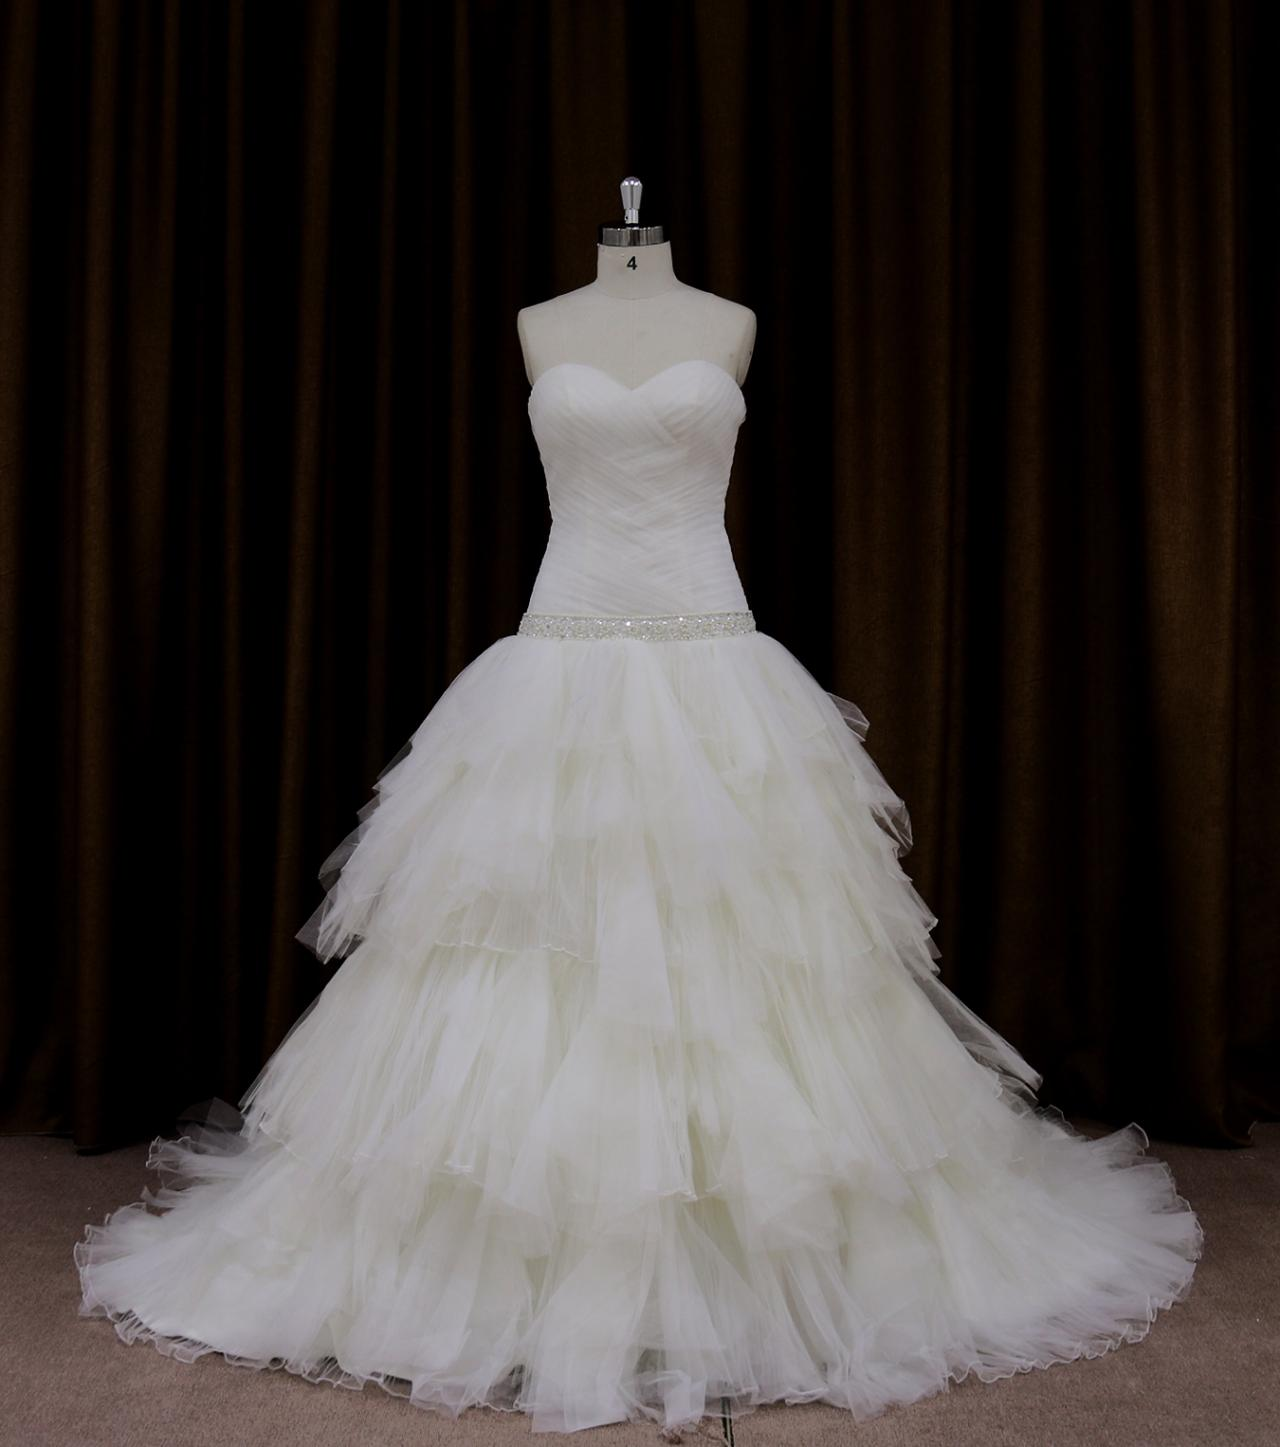 Tulle Sweetheart Ball Gown Wedding Dress With Tiered Skirt